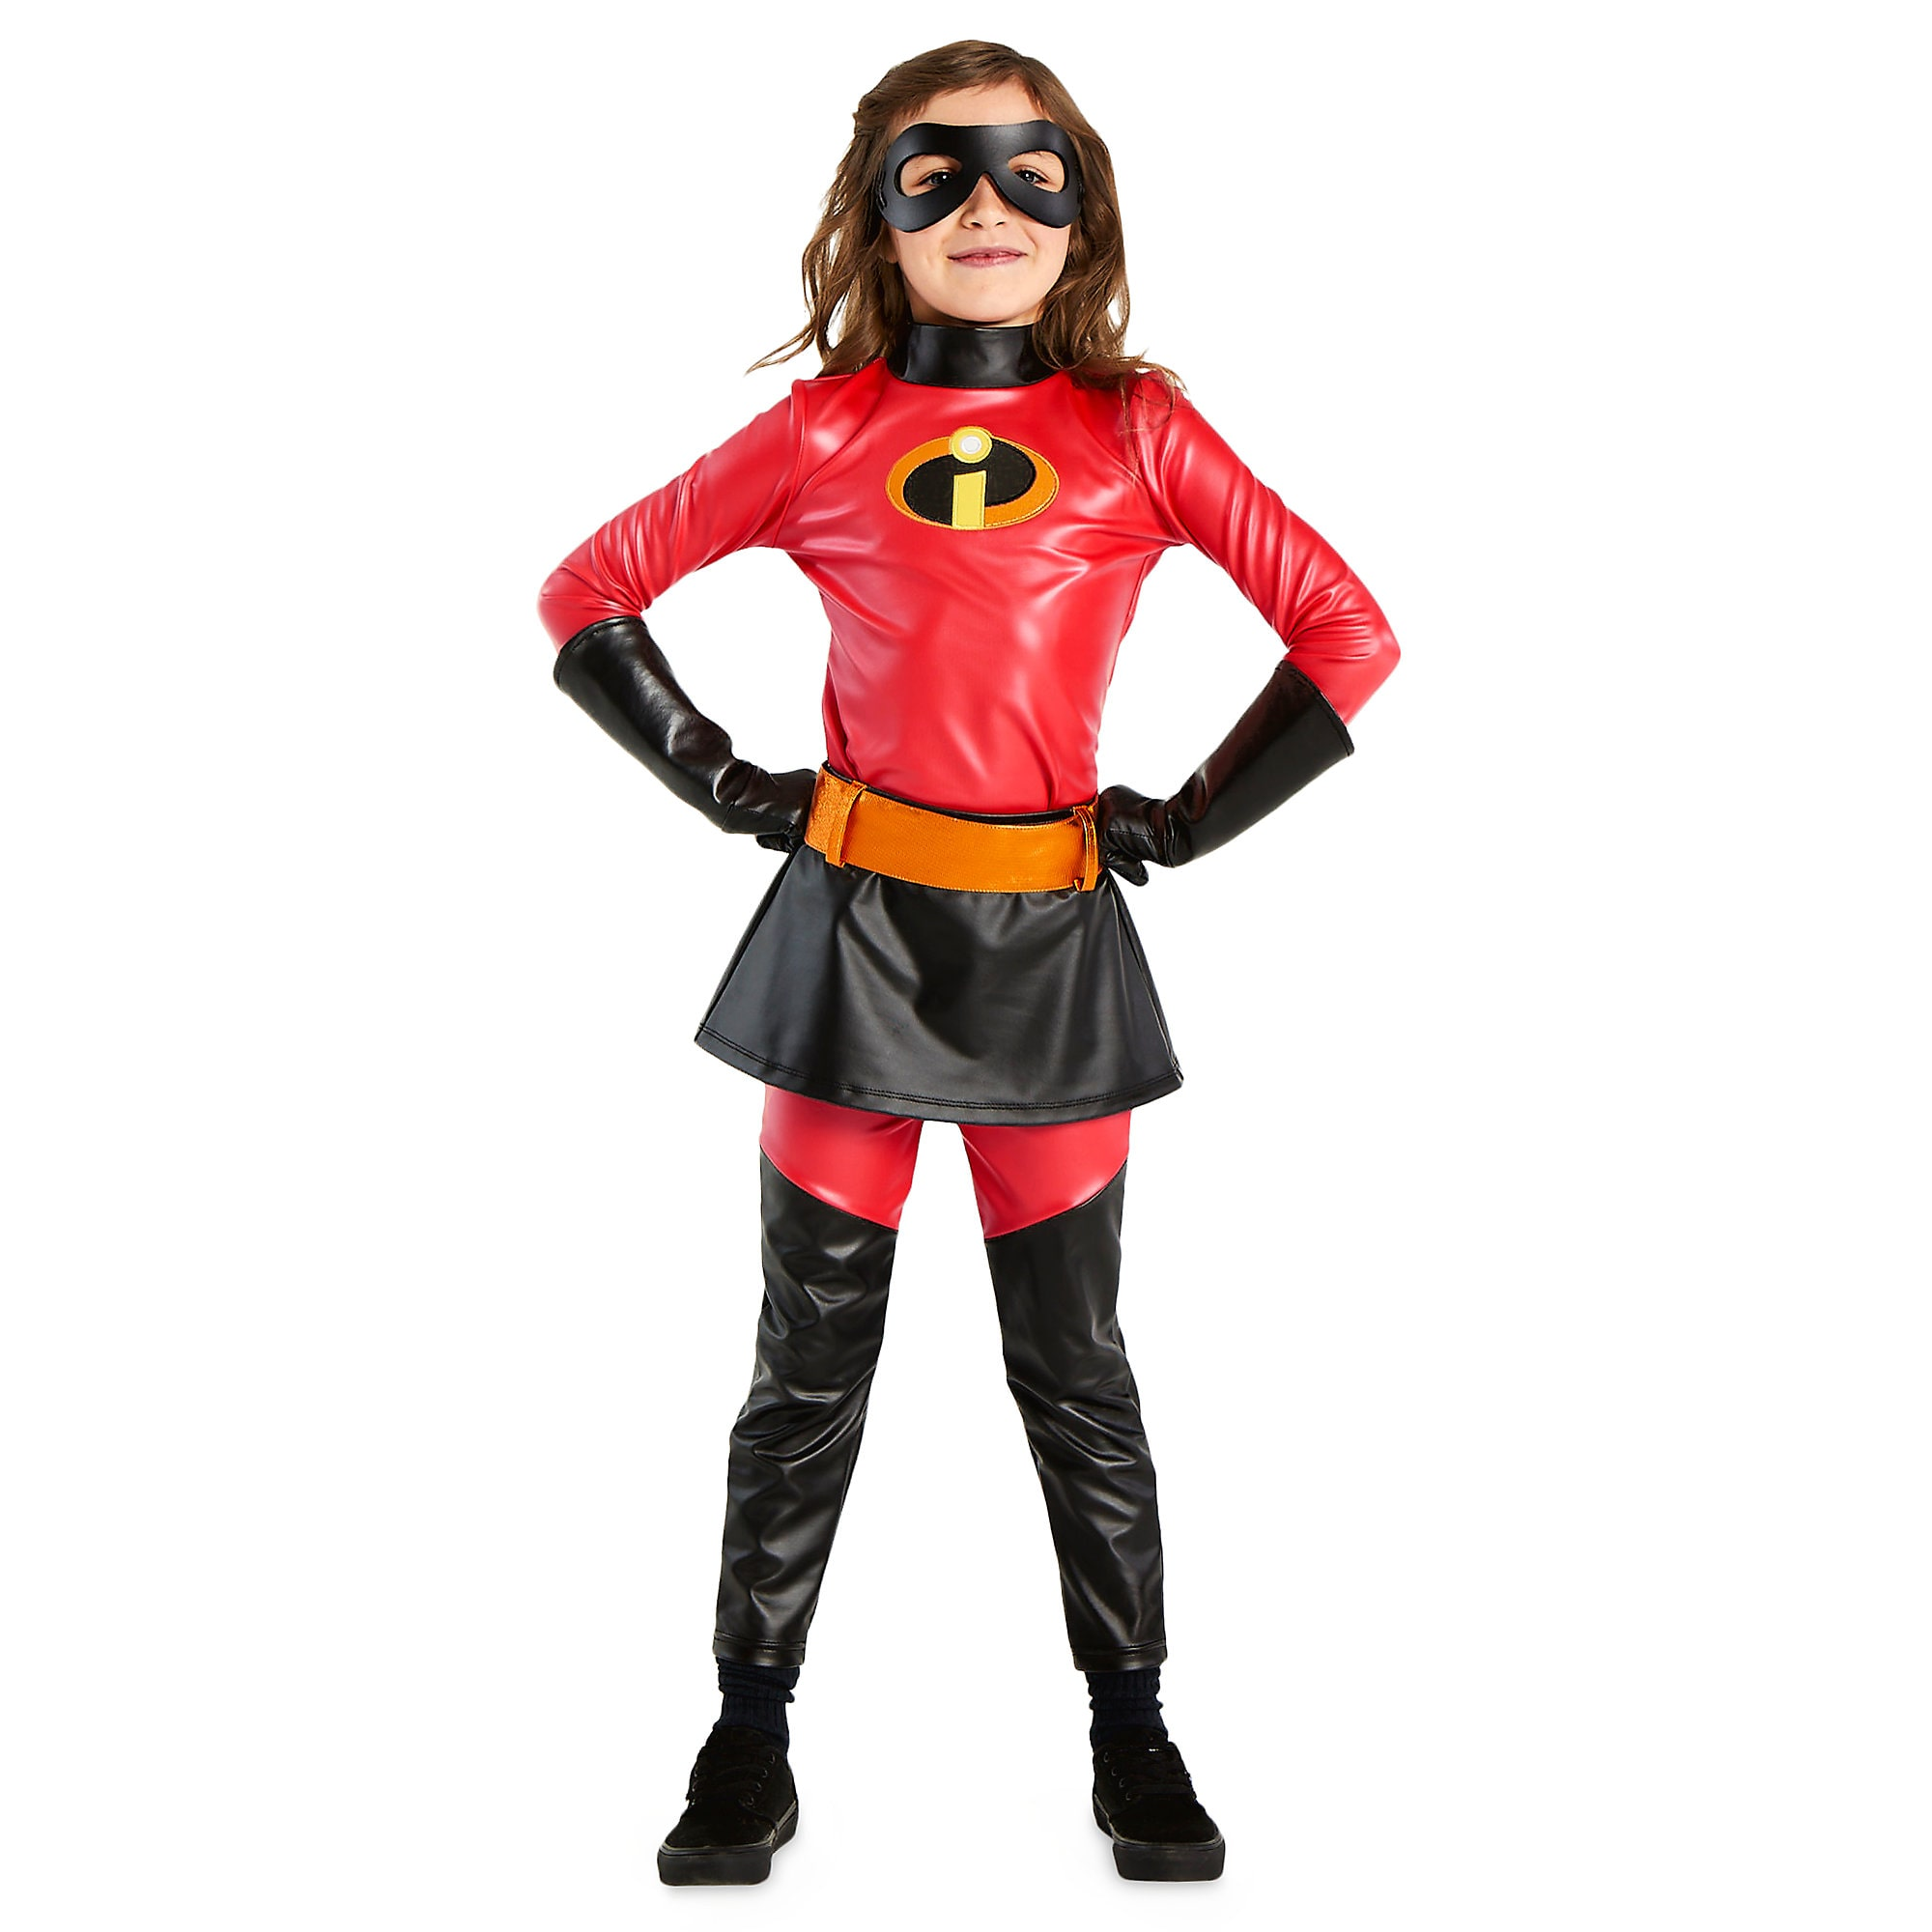 Product Image of Violet Costume for Kids - Incredibles 2 # 1  sc 1 st  shopDisney & Violet Costume for Kids - Incredibles 2 | shopDisney